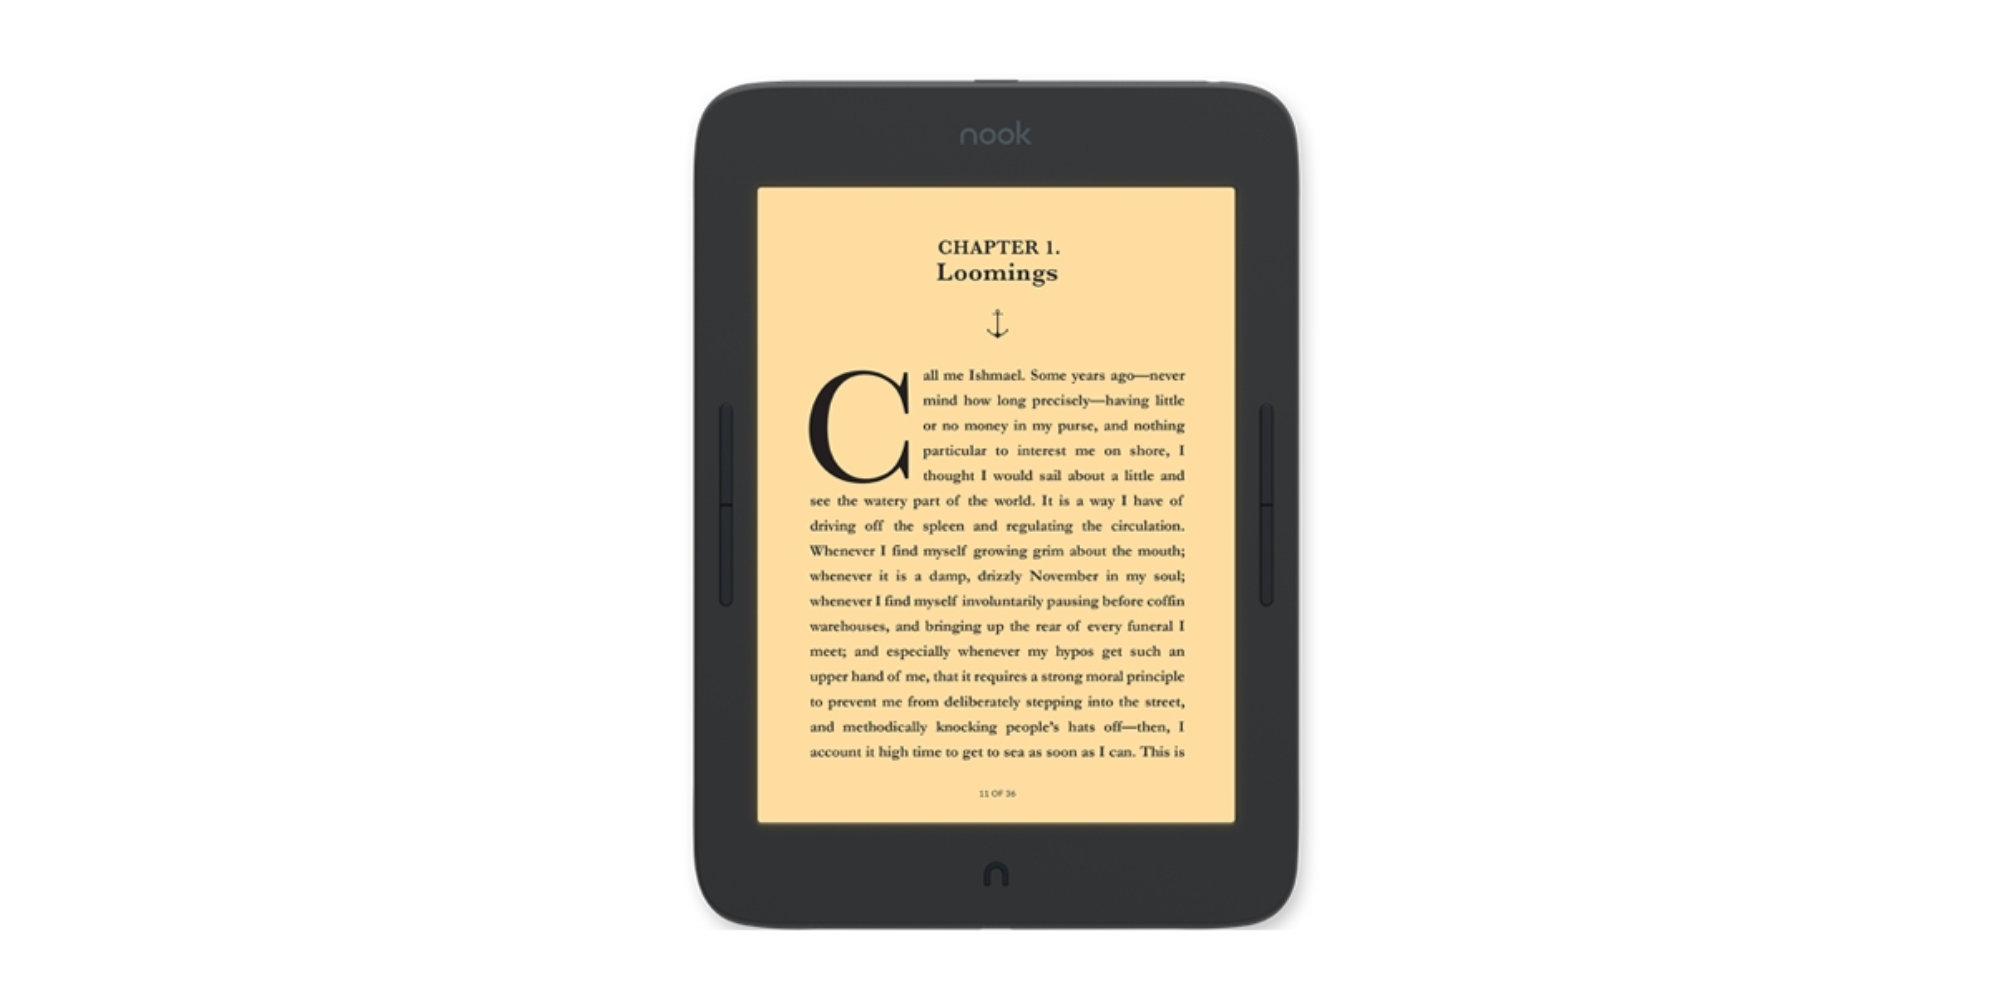 Barnes & Noble debuts its largest E-Ink Nook just in time for summer